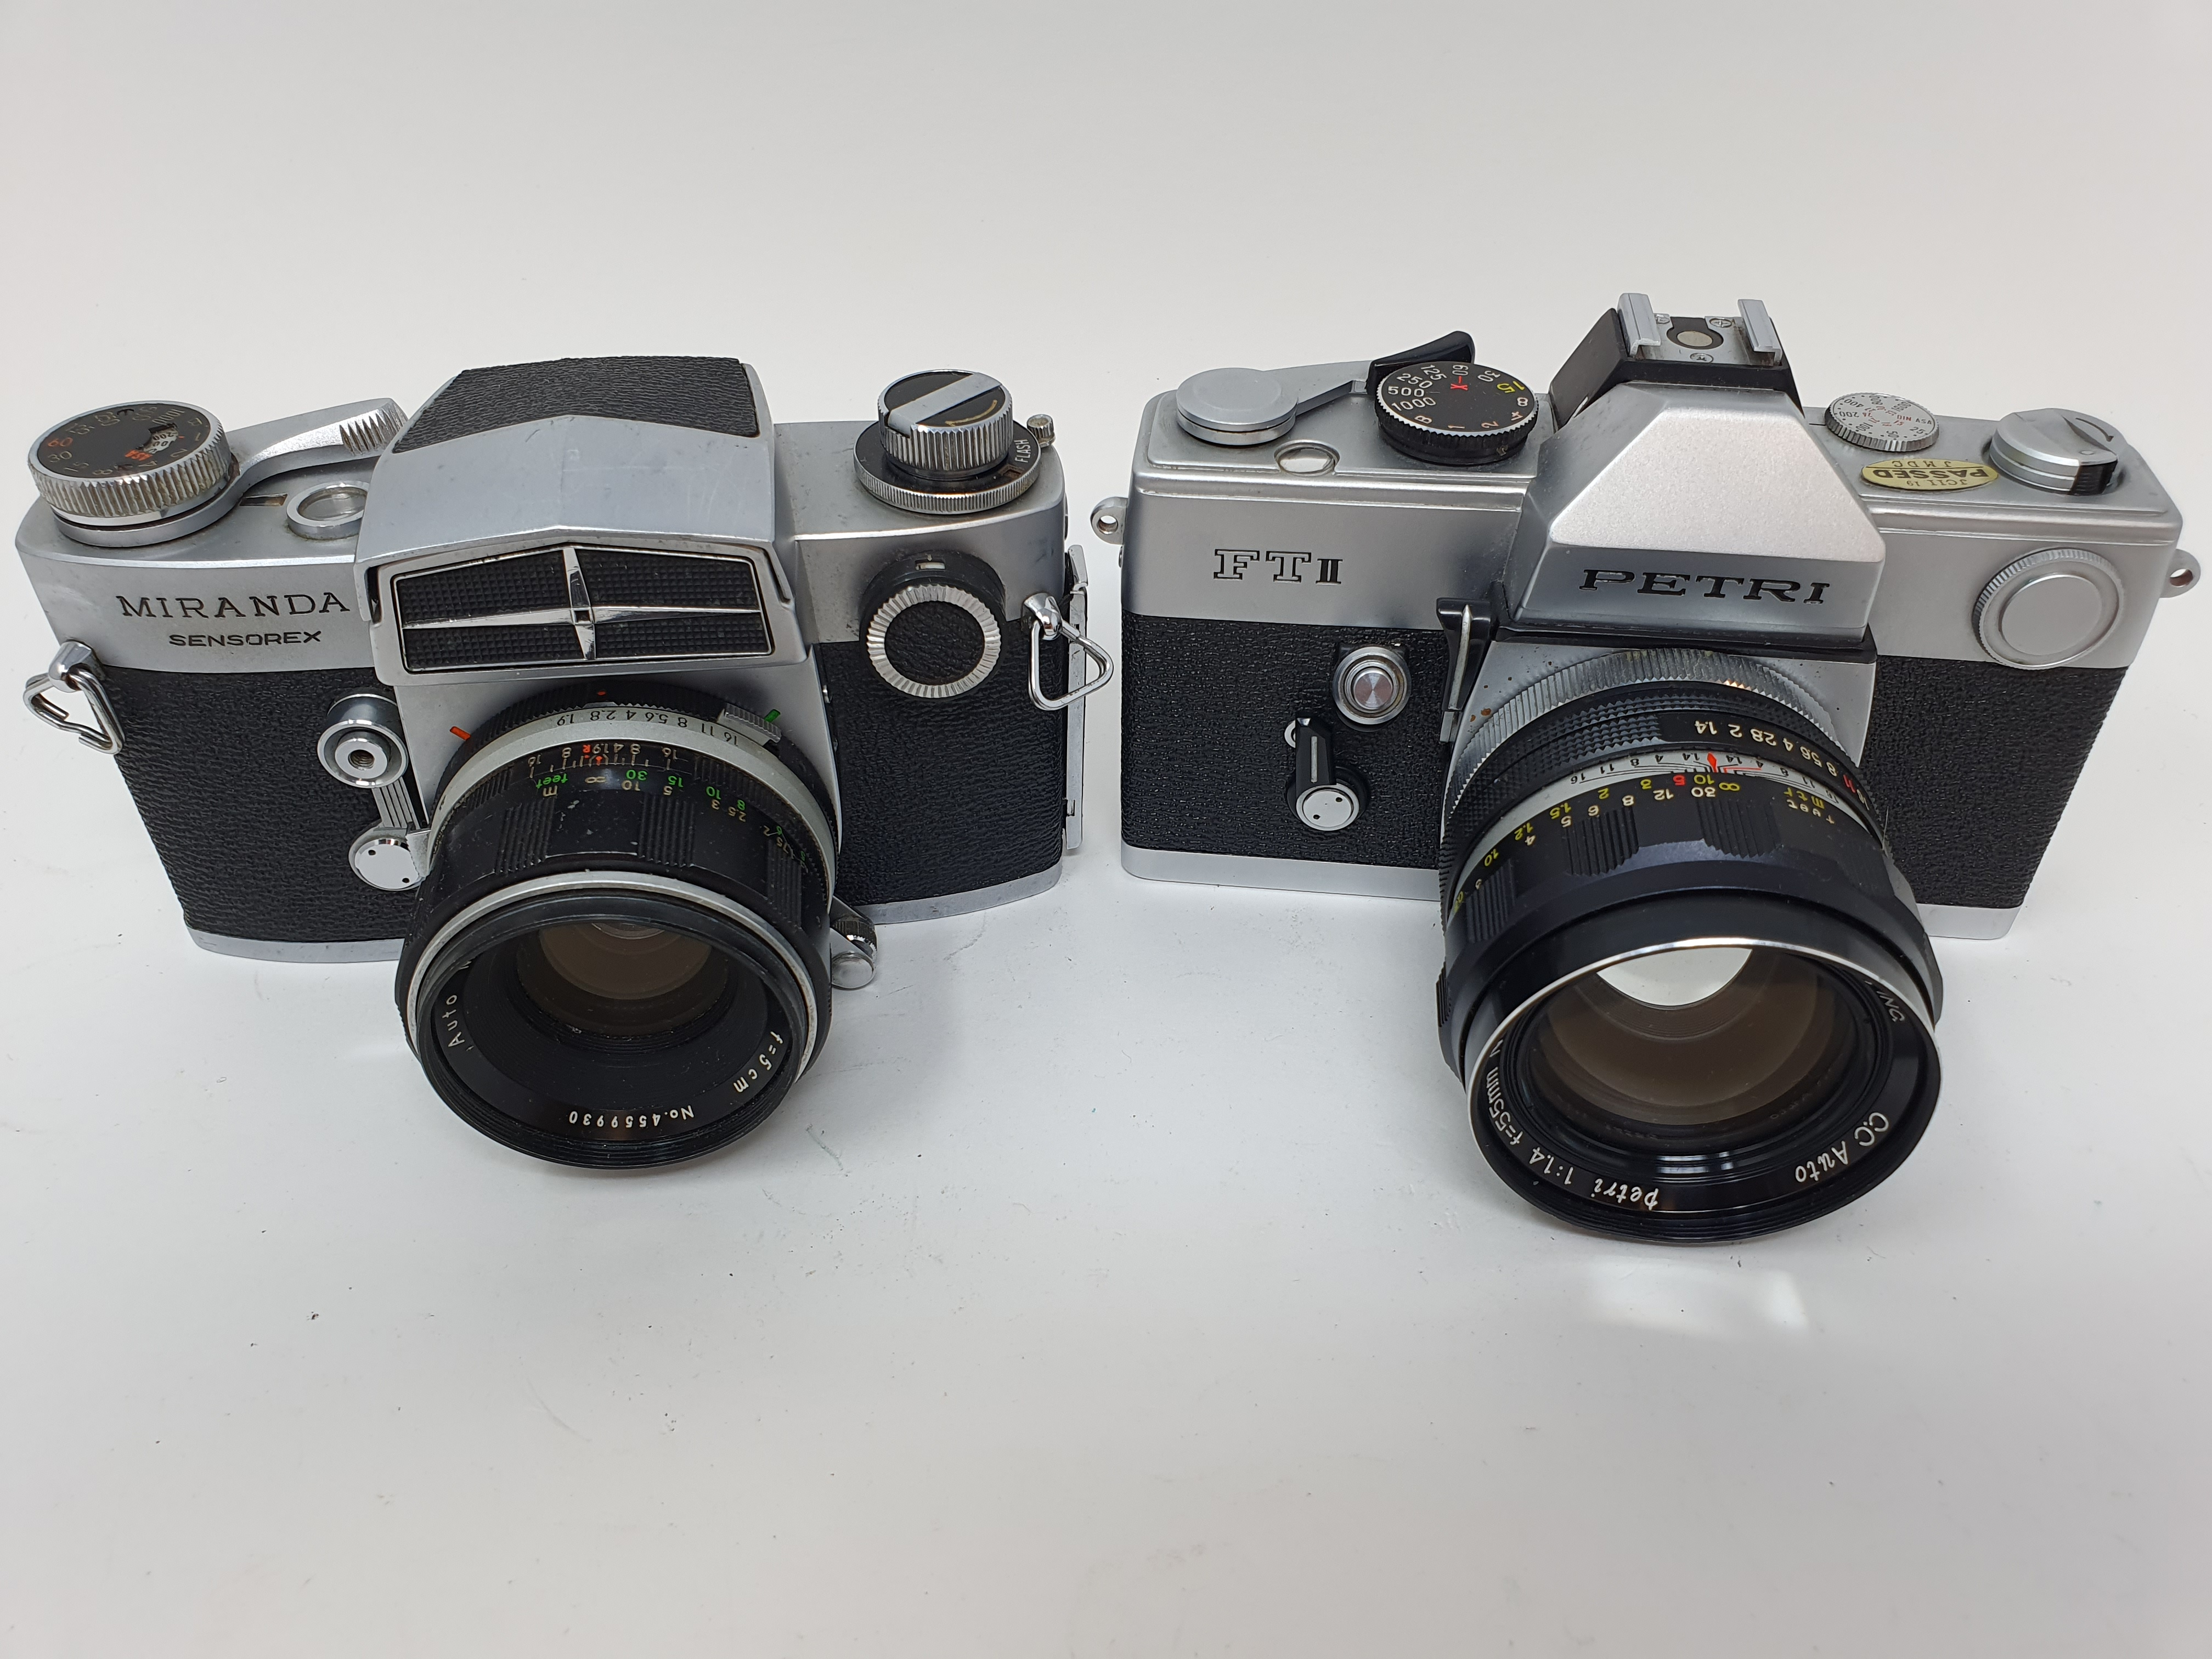 A Miranda Sensorex camera and a Petri FT II camera (2) Provenance: Part of a vast single owner - Image 2 of 4